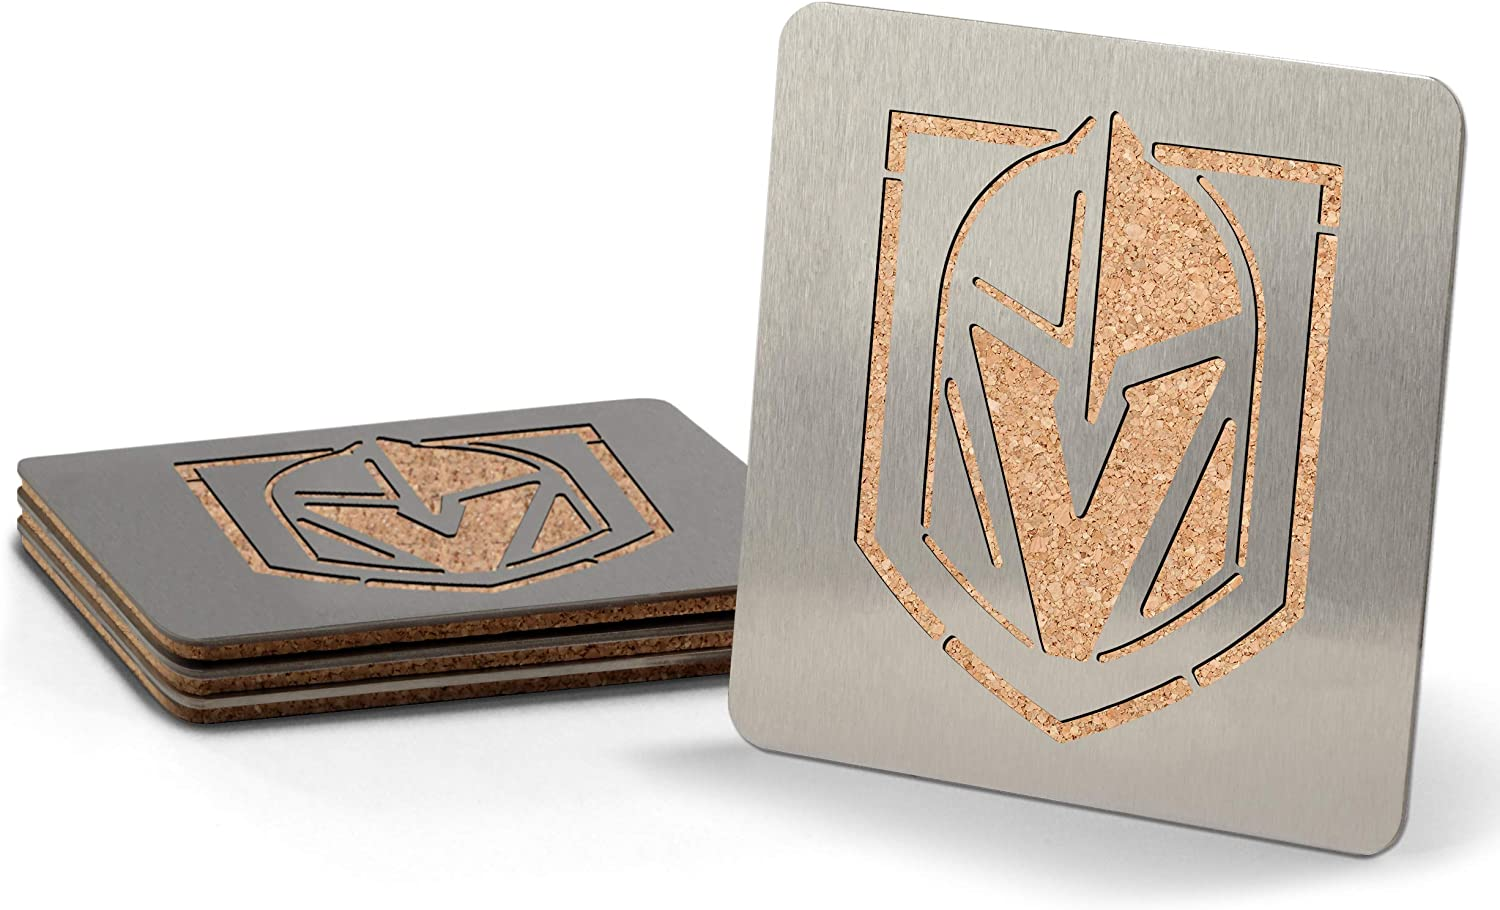 YouTheFan NHL Boasters Stainless Steel Drink Coasters